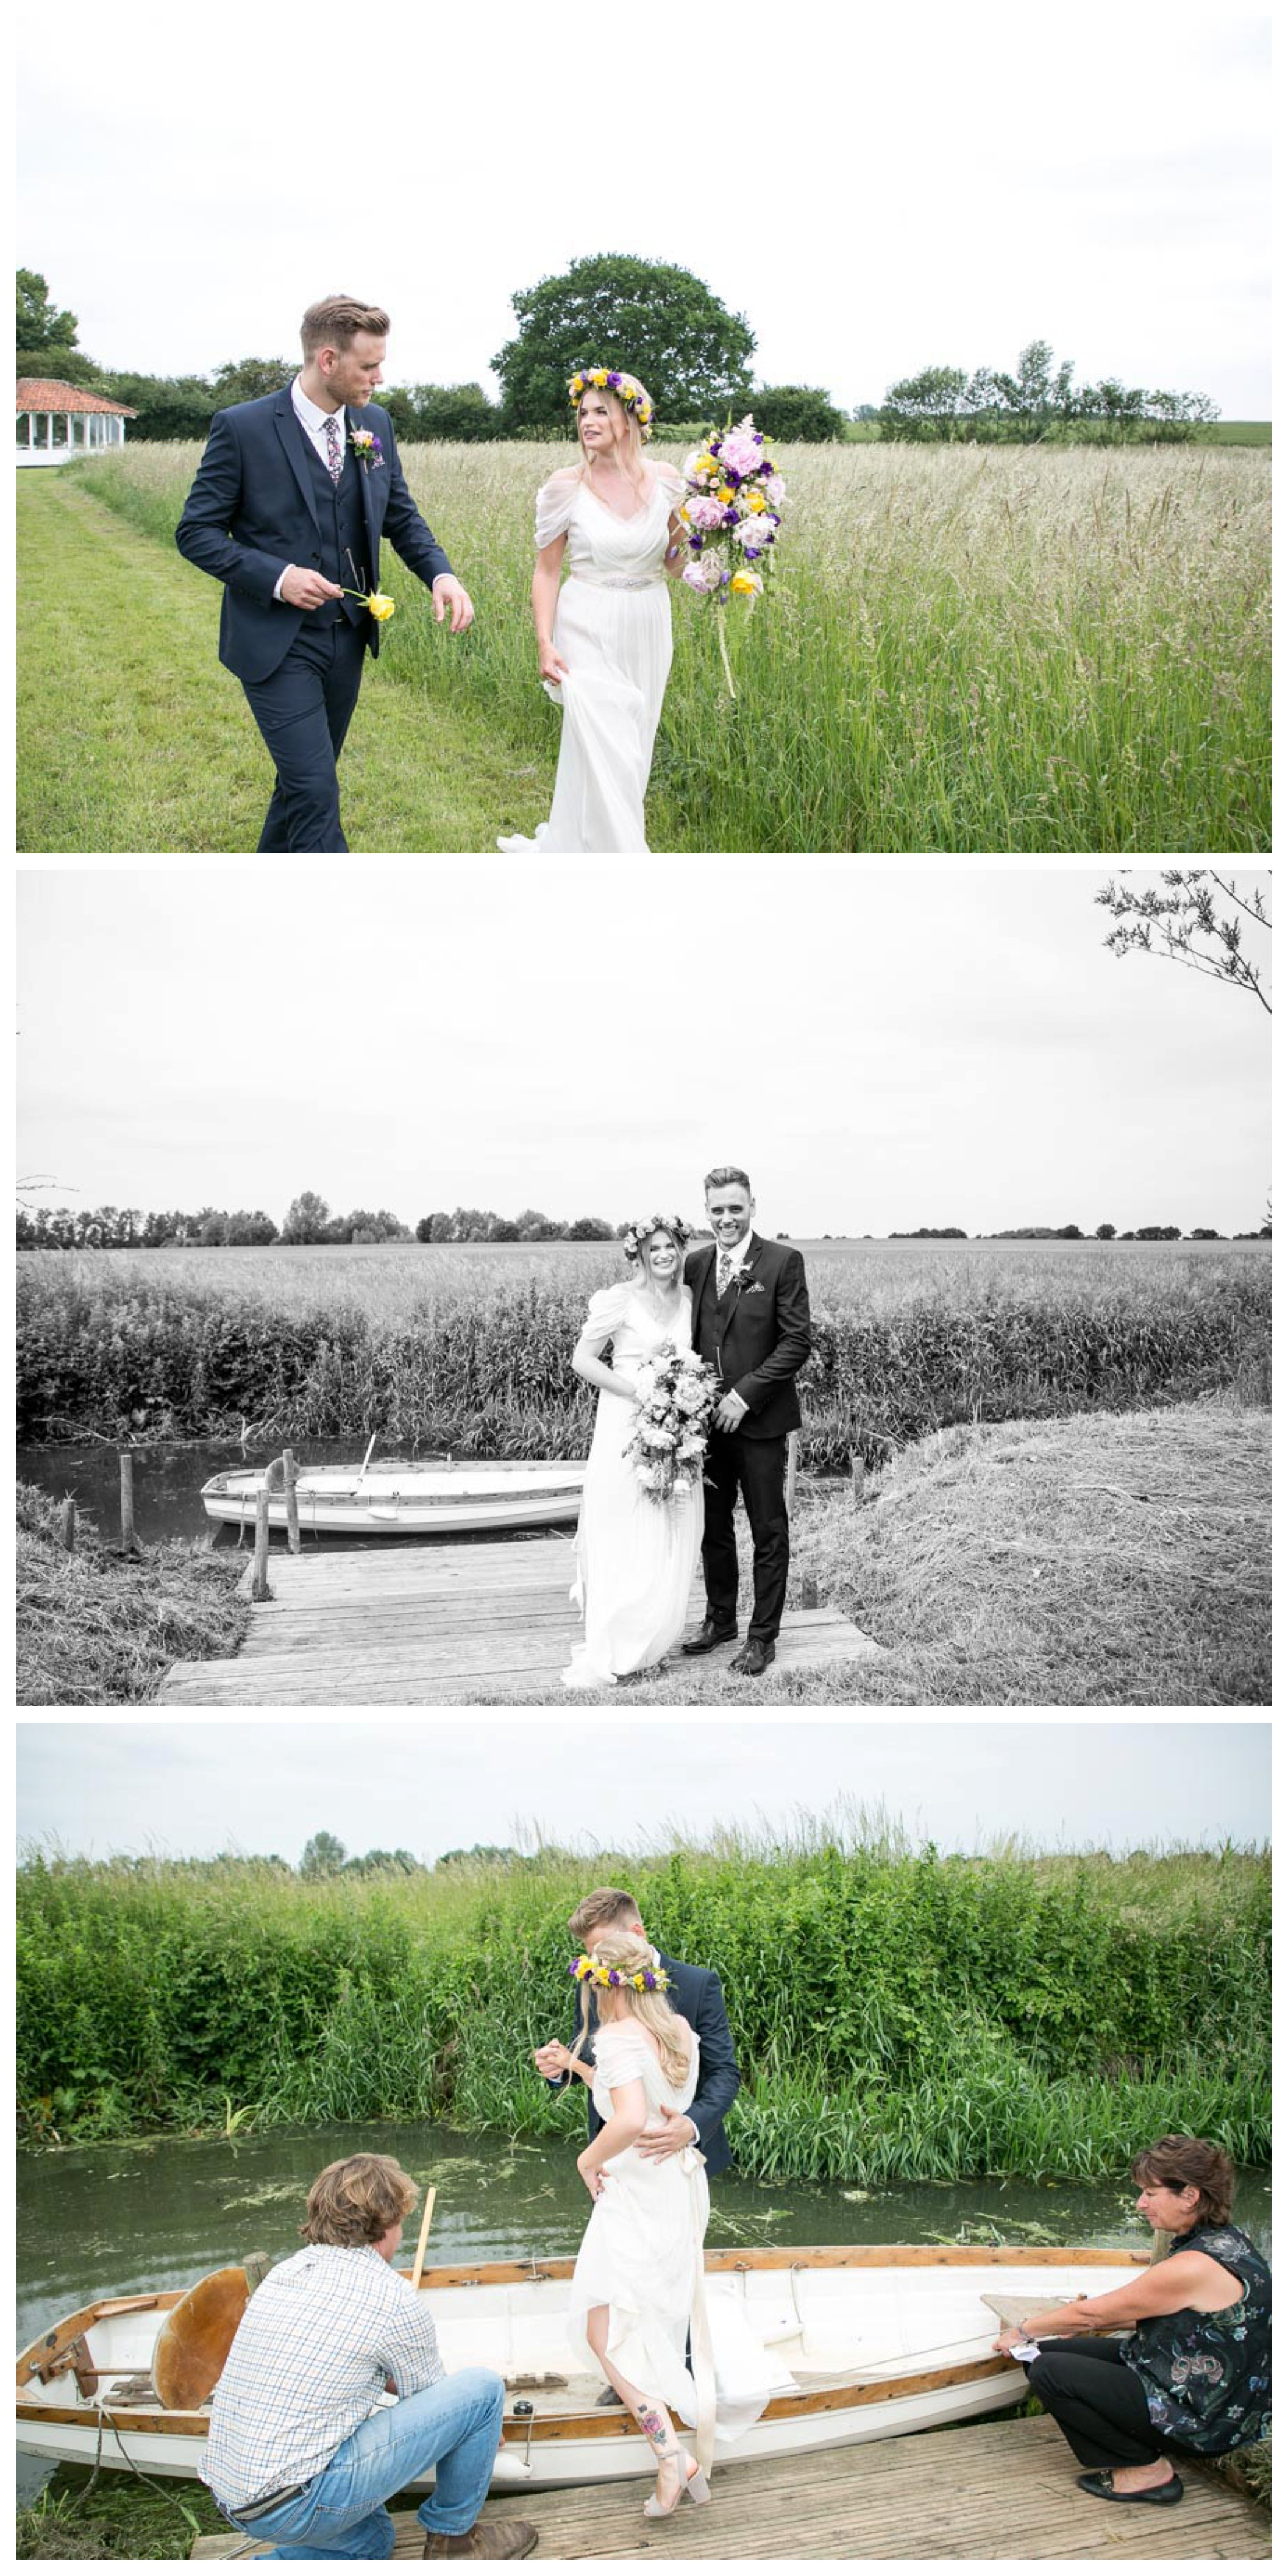 relaxed couple just married, walking along in field, standing near boat and getting onto rowing boat